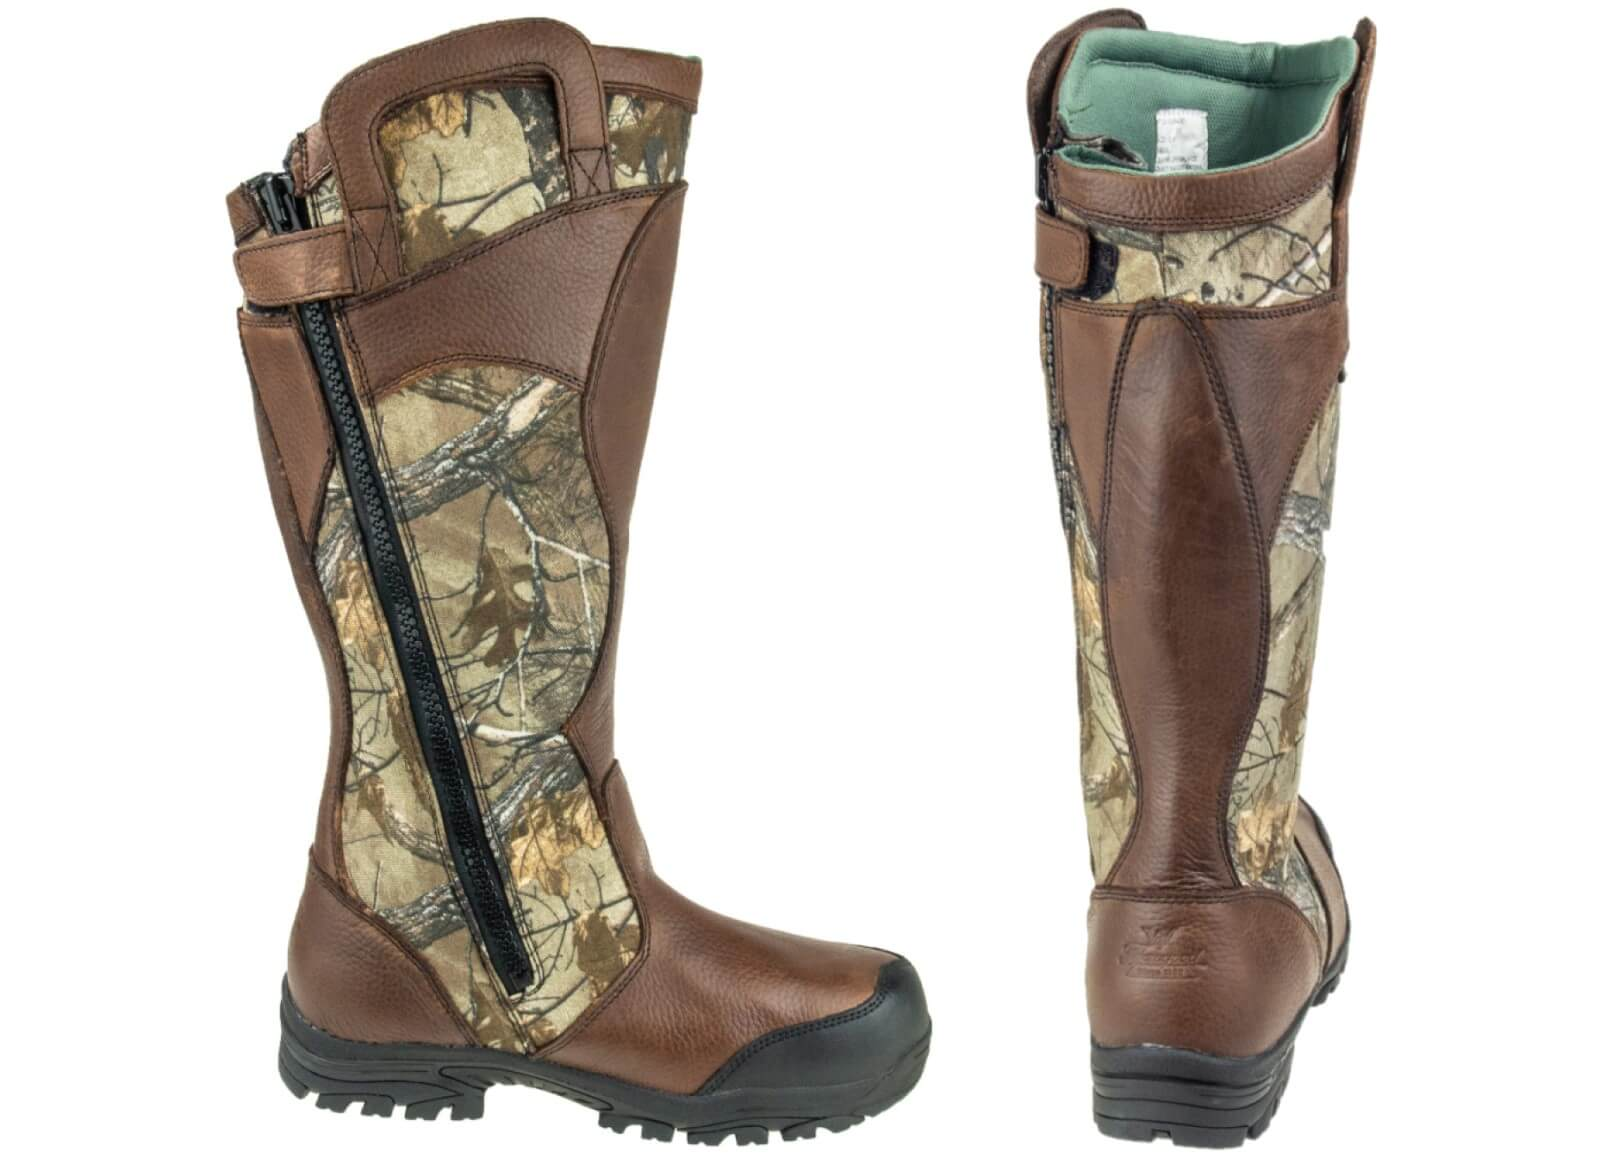 Thorogood snake boot detailed images of side zipper and rear heel of boot with mossy oak breakup pattern